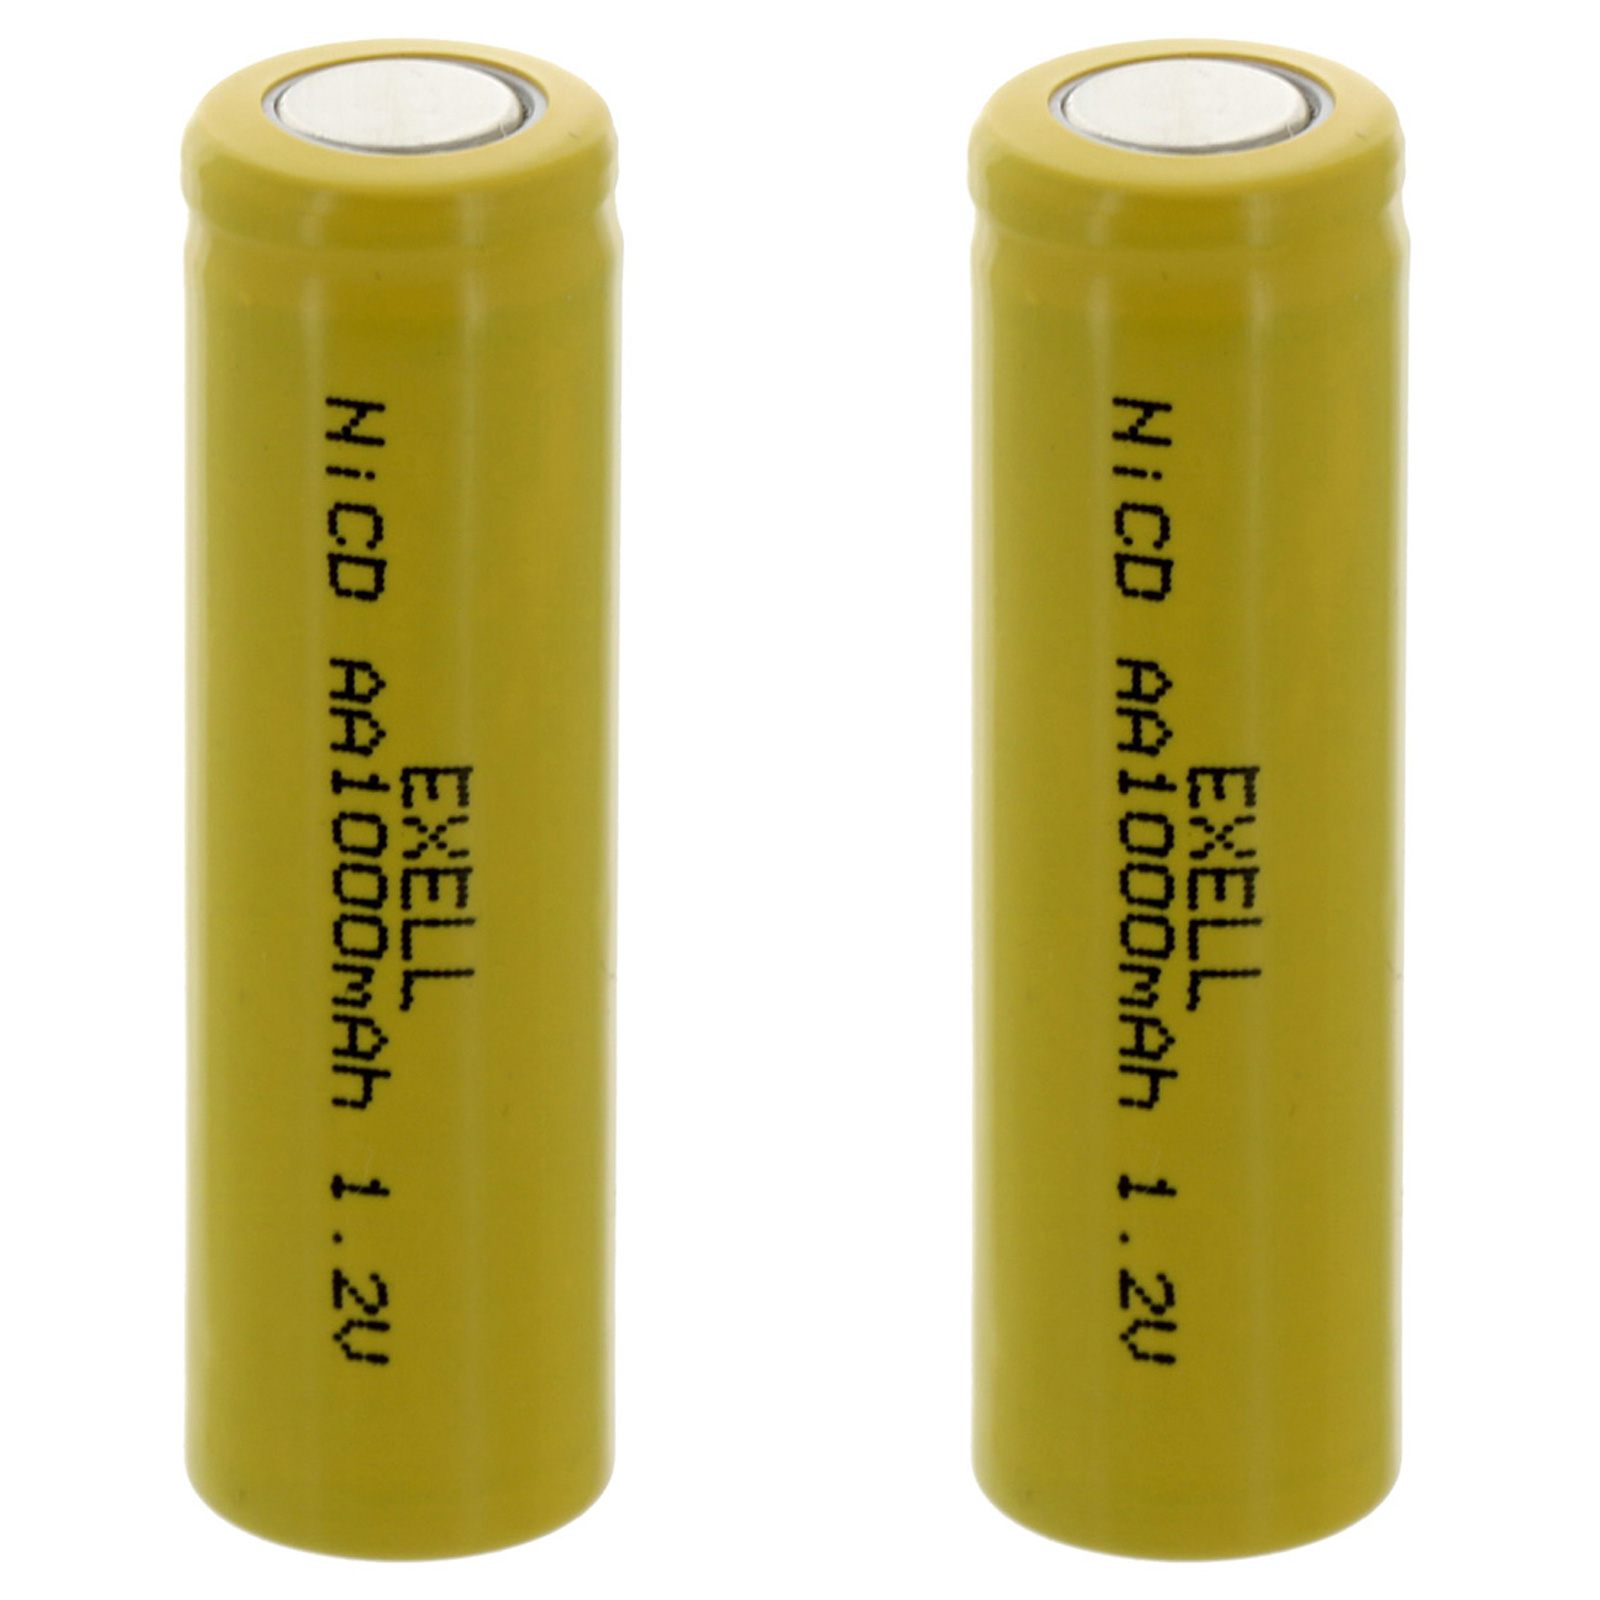 2x Exell AA 1.2V 1000mAh NiCD Flat Top Rechargeable Batteries FAST USA SHIP